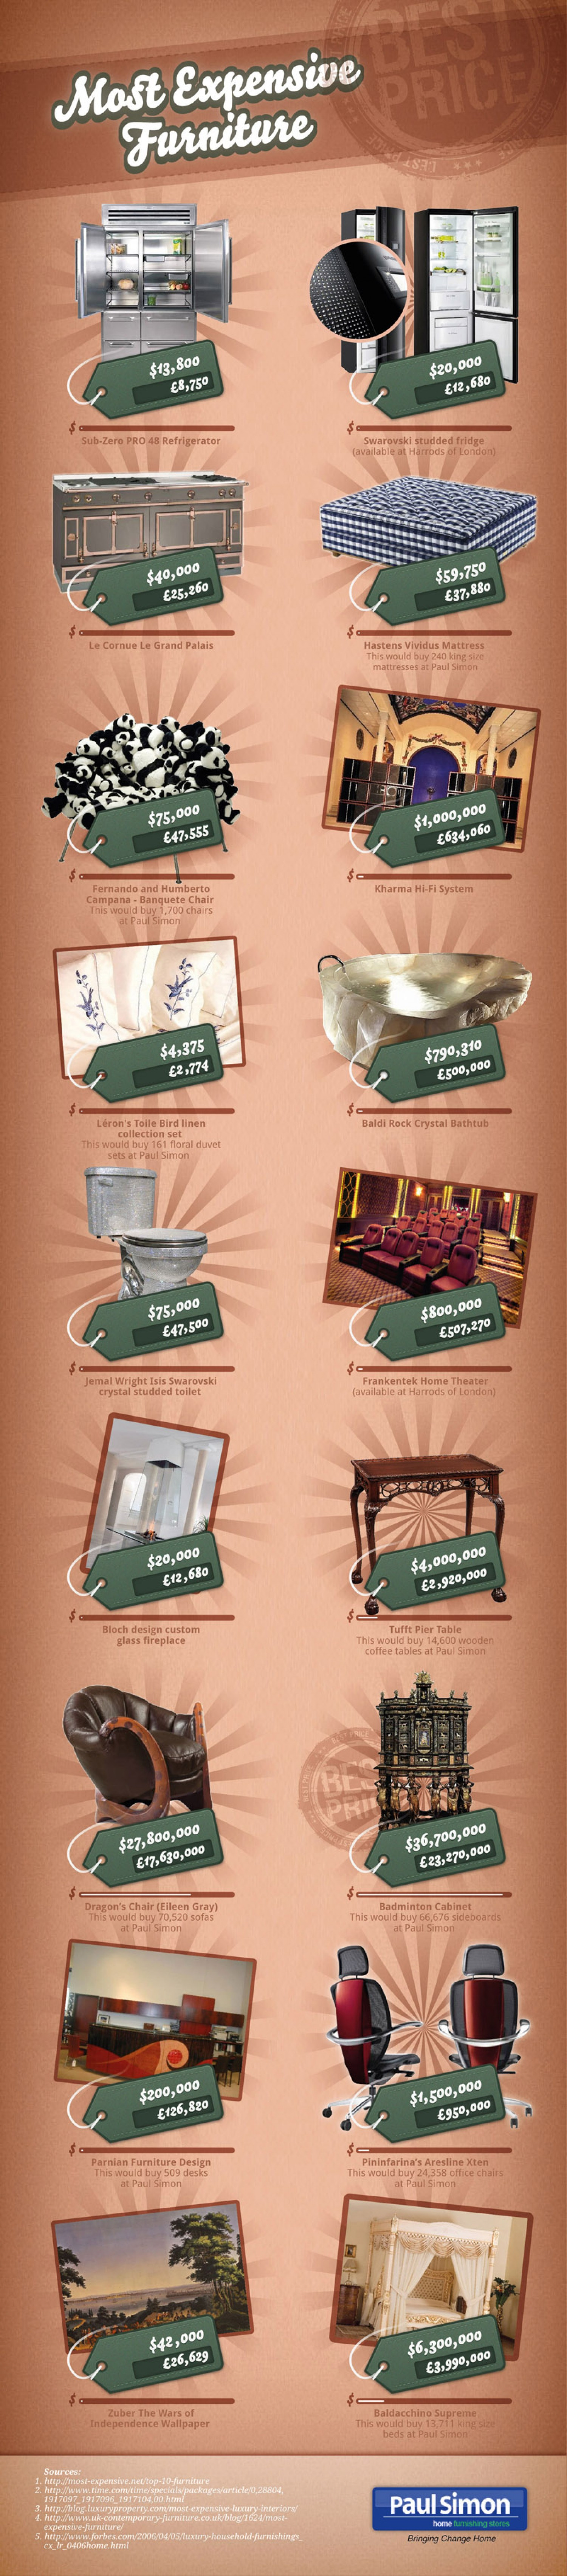 13. The most expensive furniture